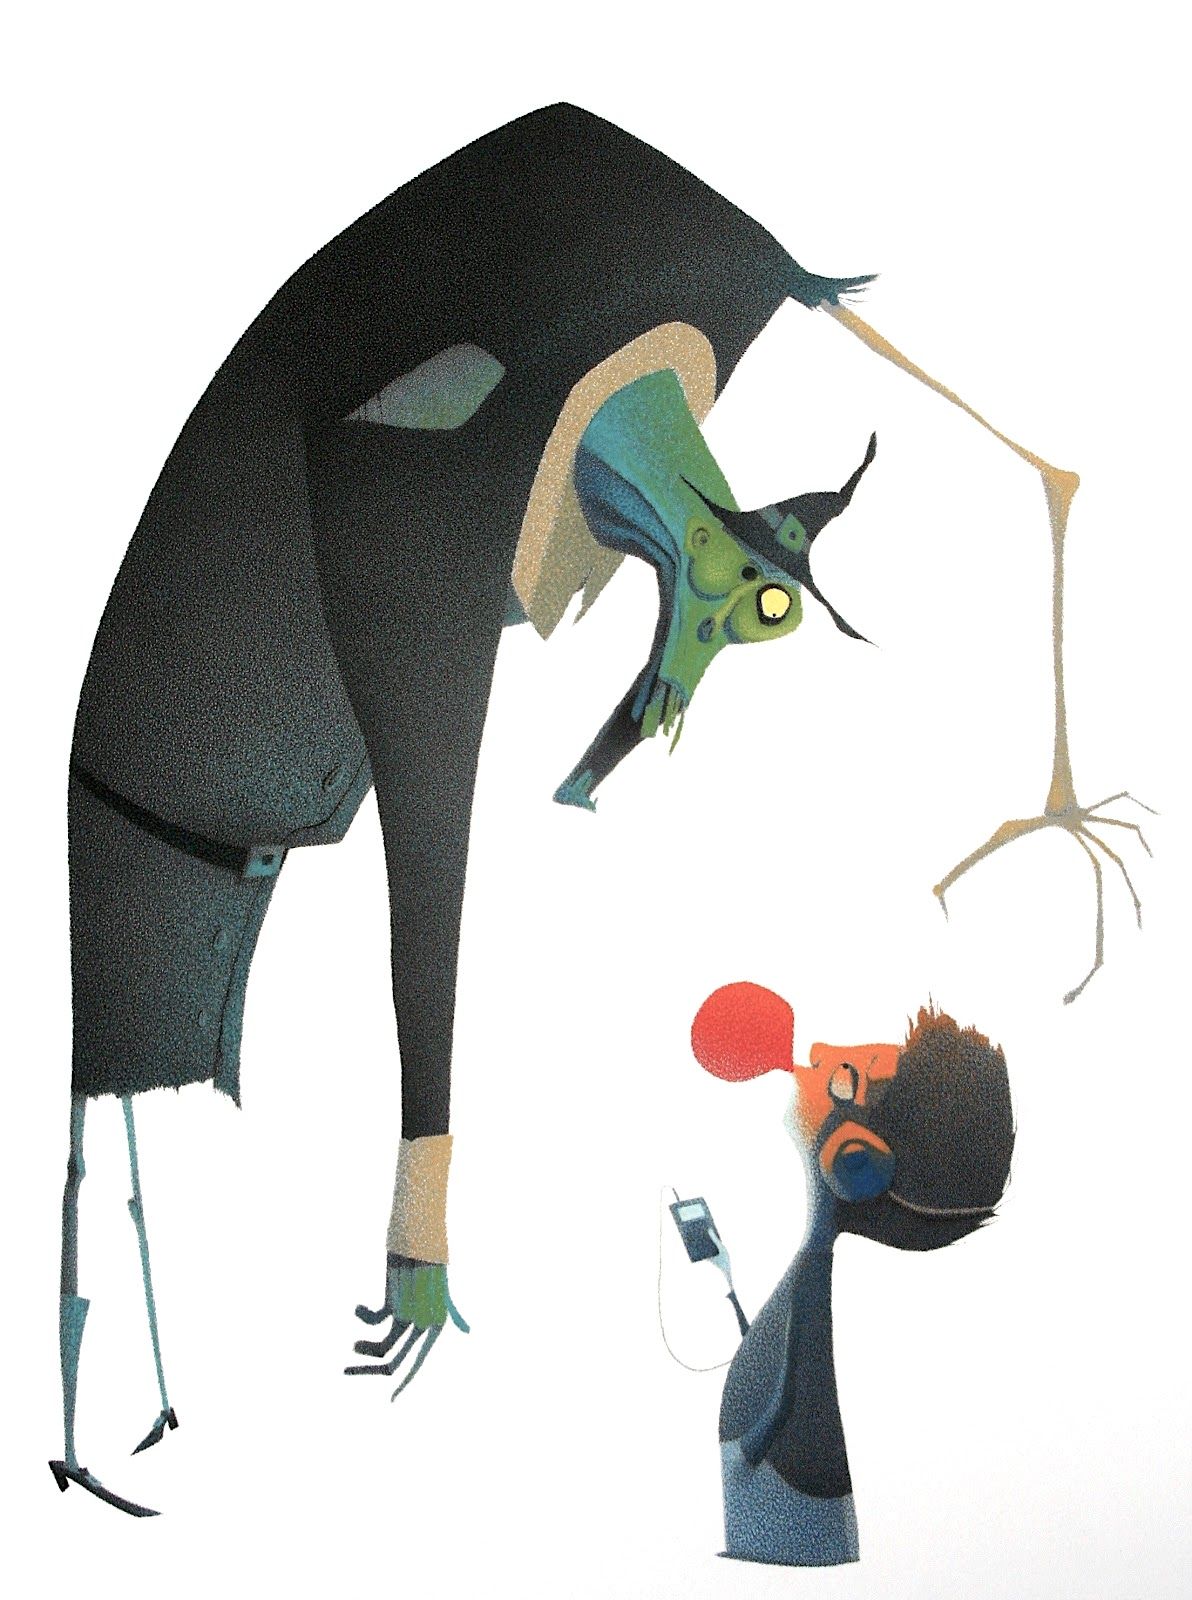 098a-paranorman-concept-art-character-design-Zombie_and_boy_3.jpg